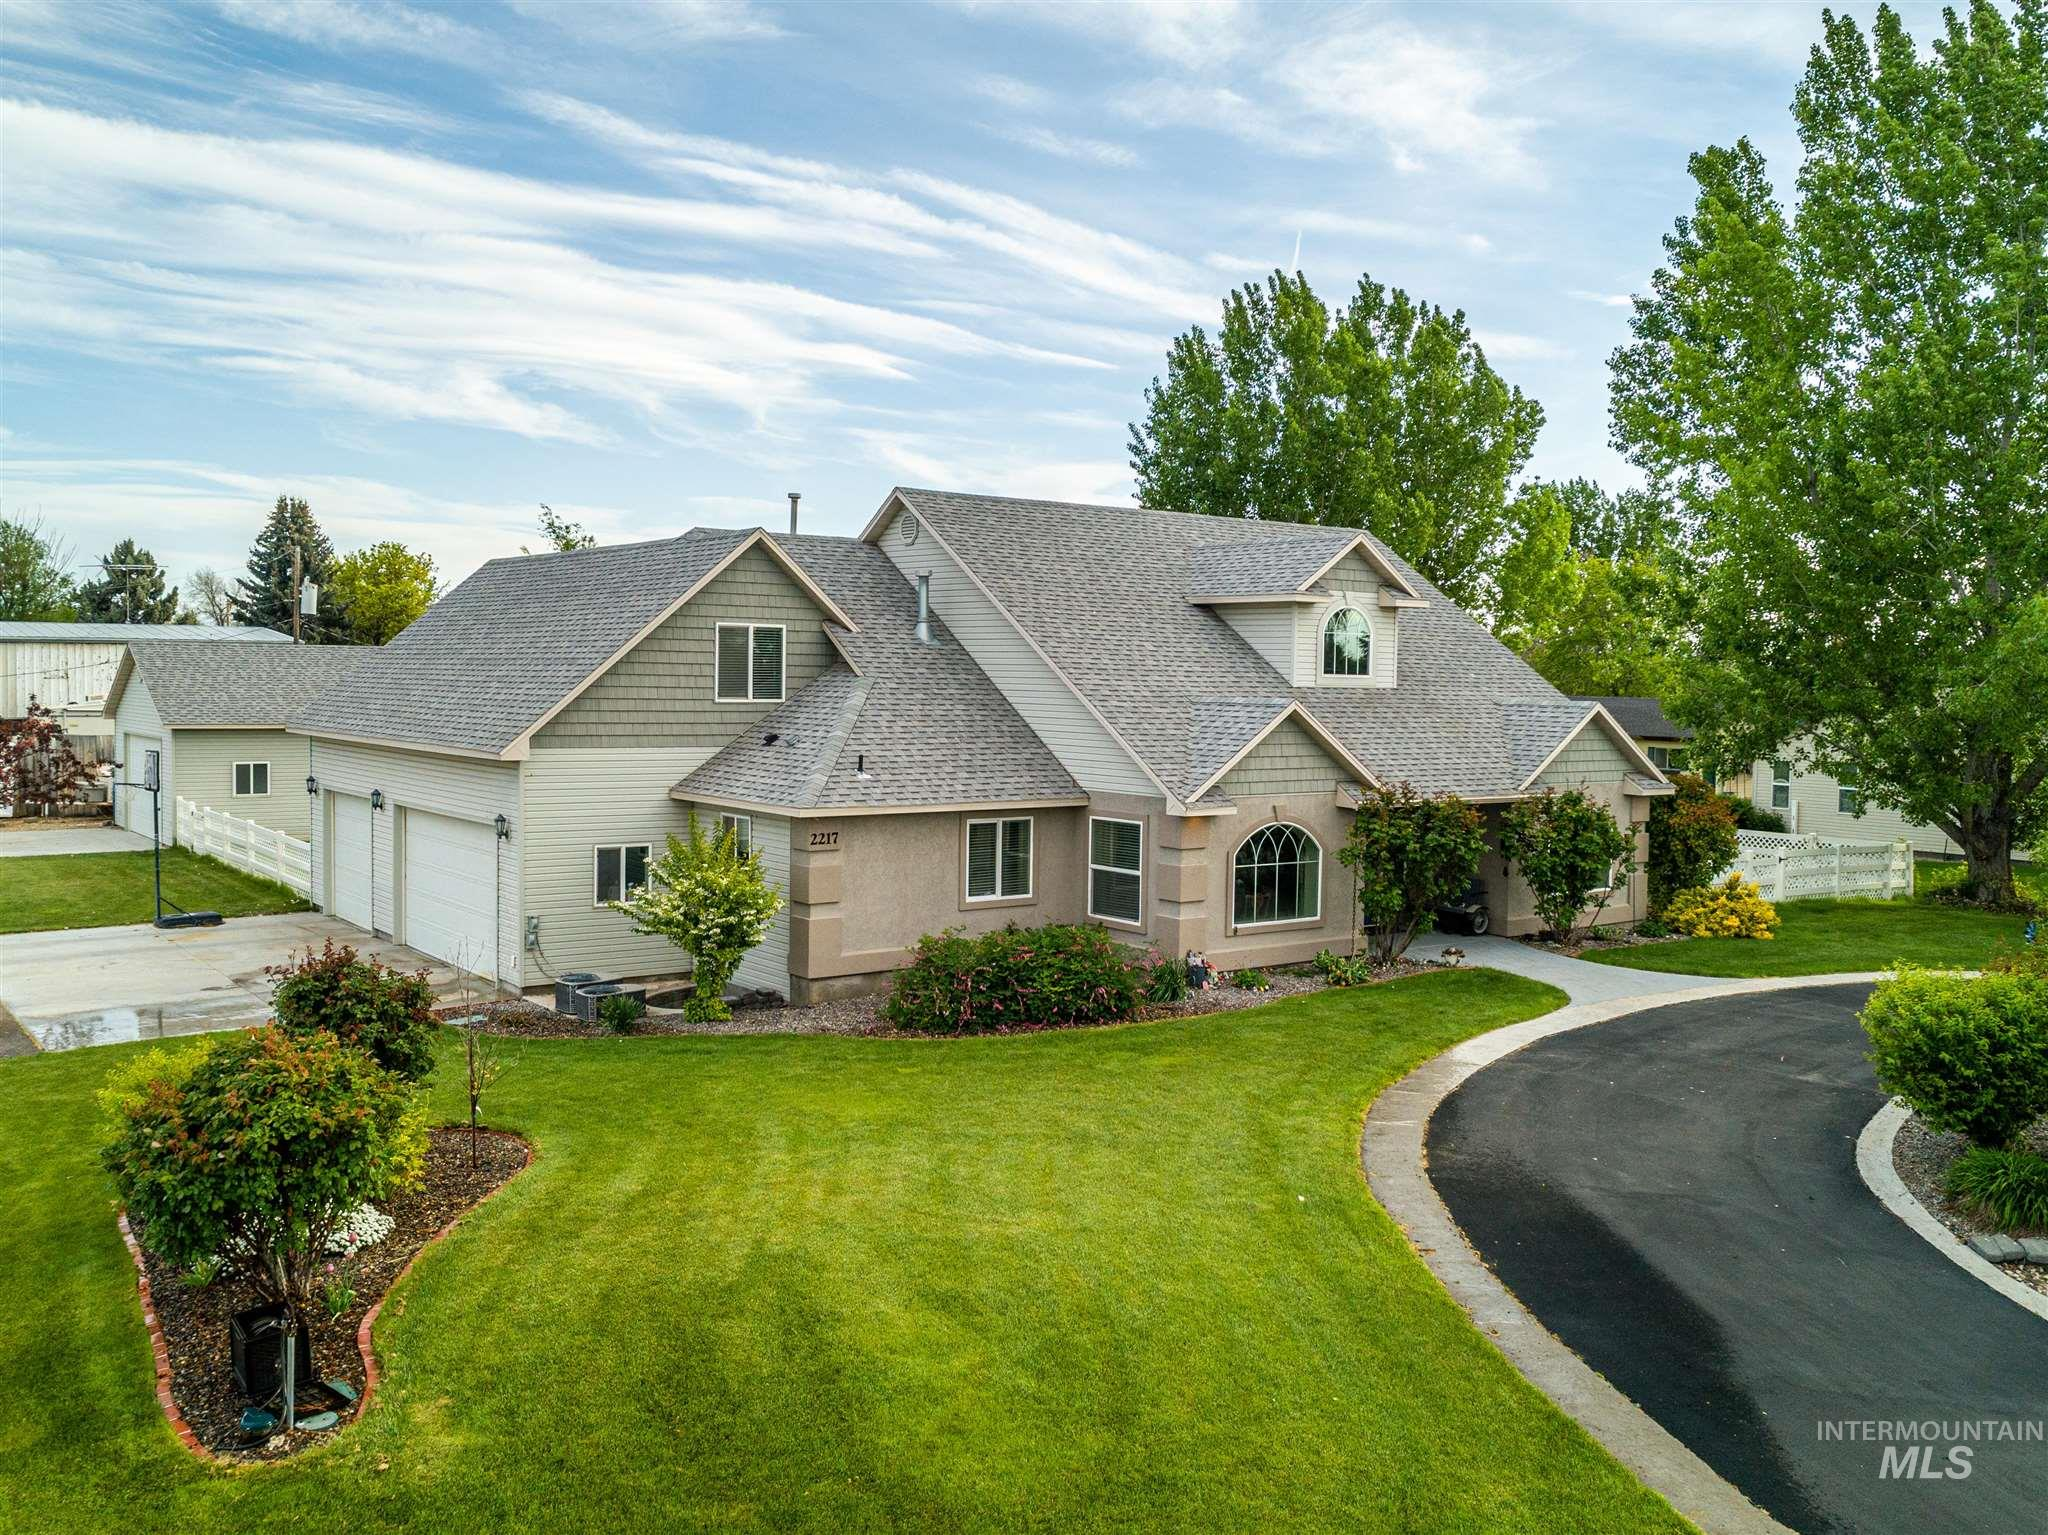 2217 Patrice Dr Property Photo - Nampa, ID real estate listing